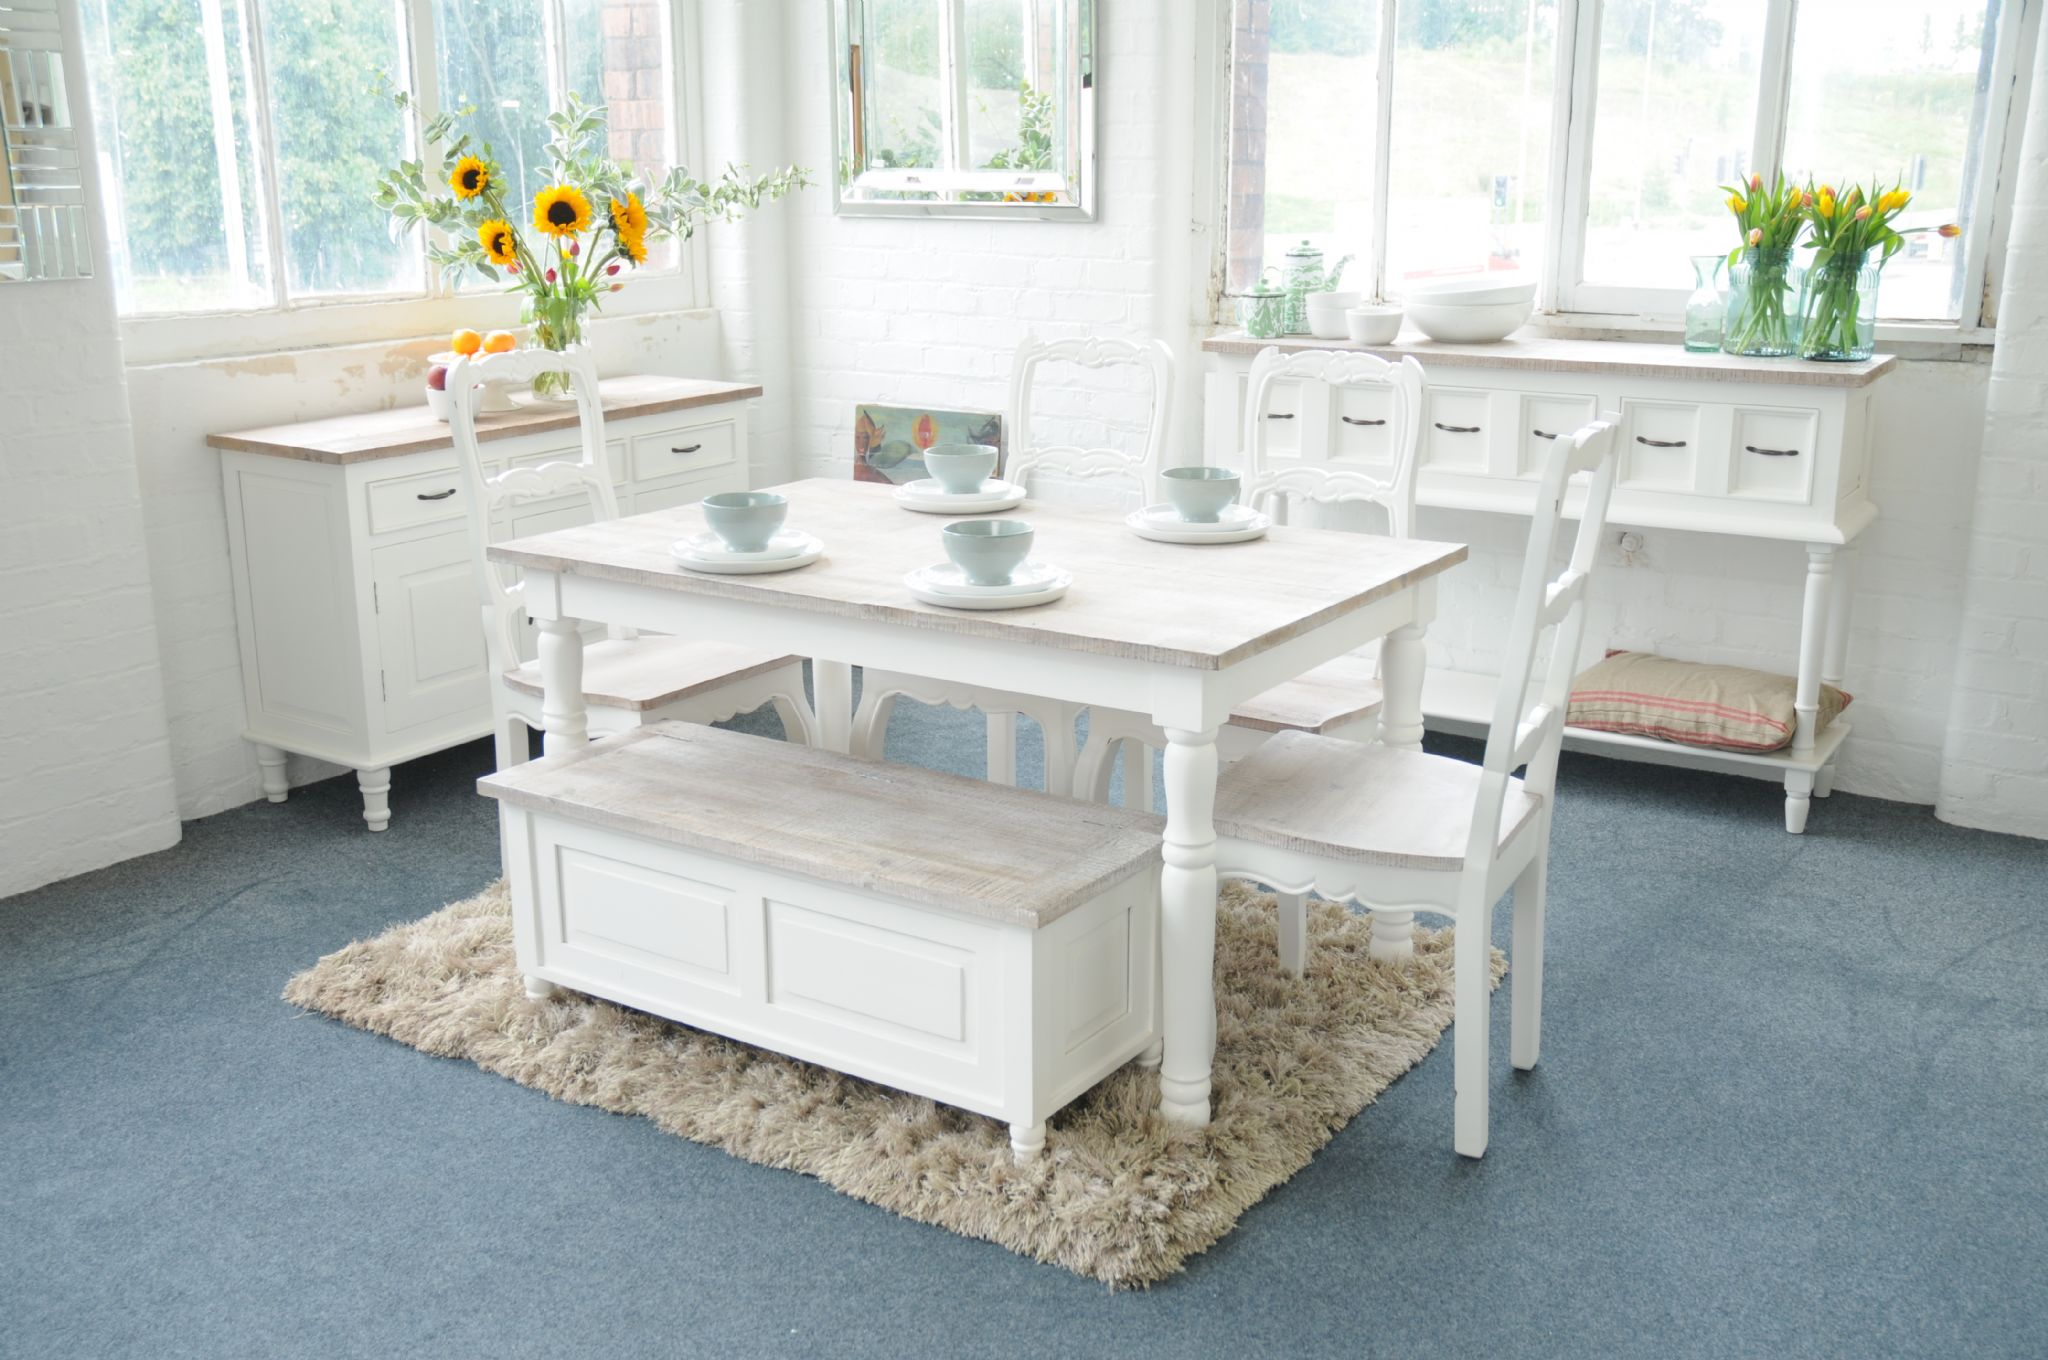 painted cottonwood shabby chic french kitchen dining table grey or white ebay. Black Bedroom Furniture Sets. Home Design Ideas